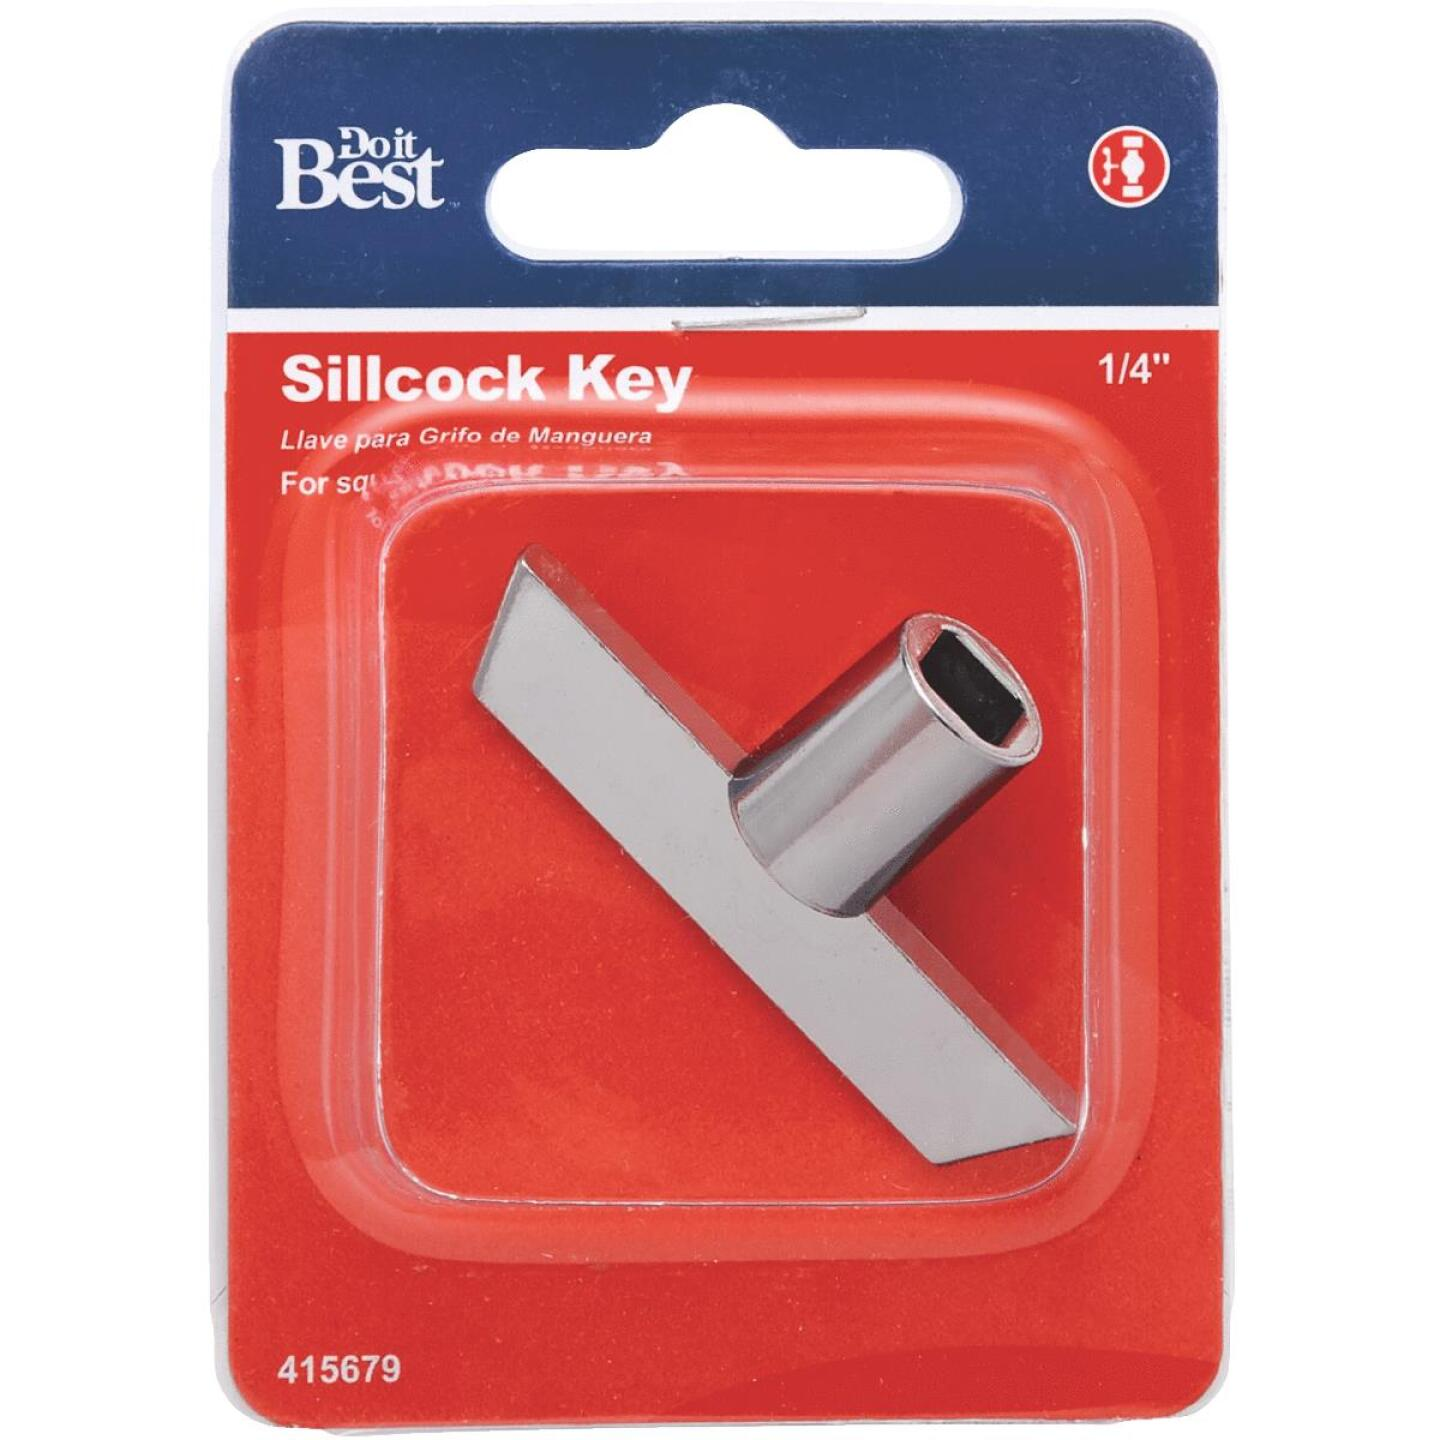 Do it Lawn Faucet Key for 5/16 In. to 1/4 In. Stems Image 2